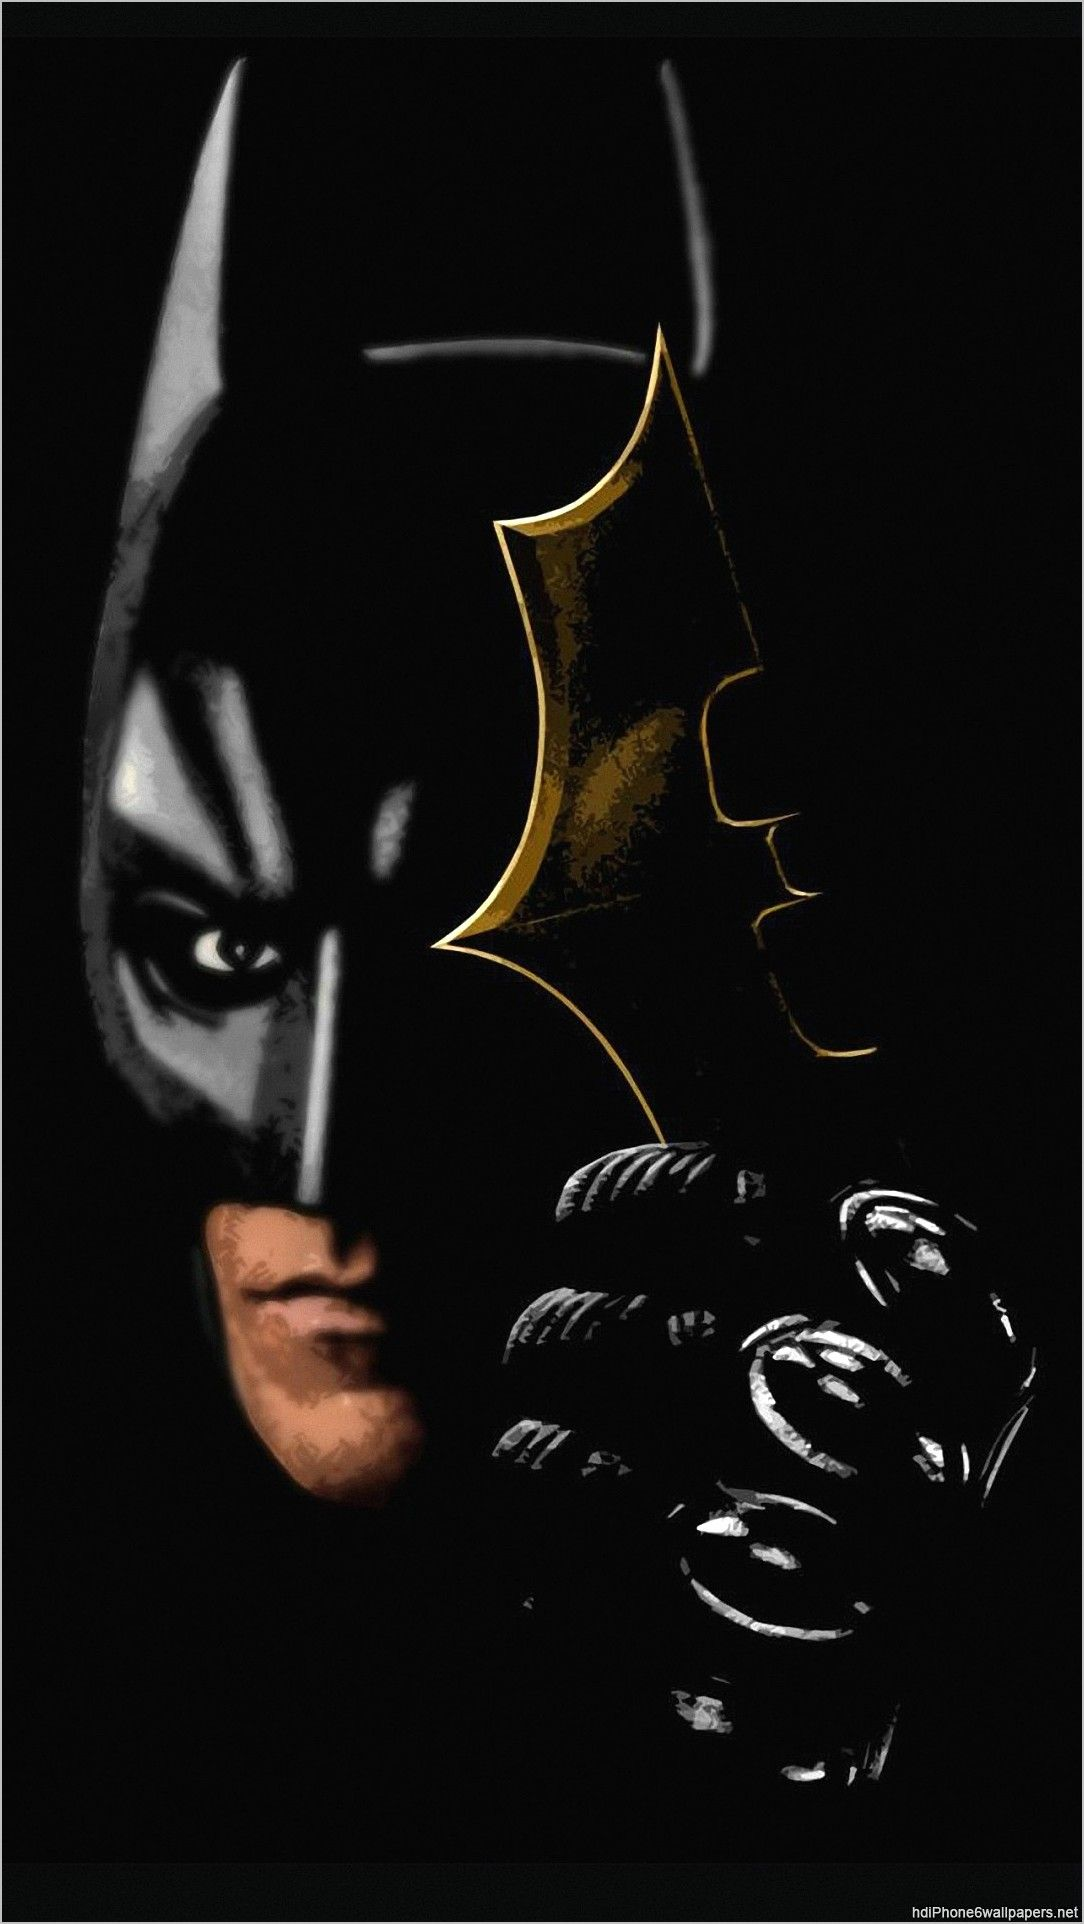 4k Wmv Wallpapers Batman Em 2020 Batman Wallpaper Wallpaper Do Batman Para Iphone Batman